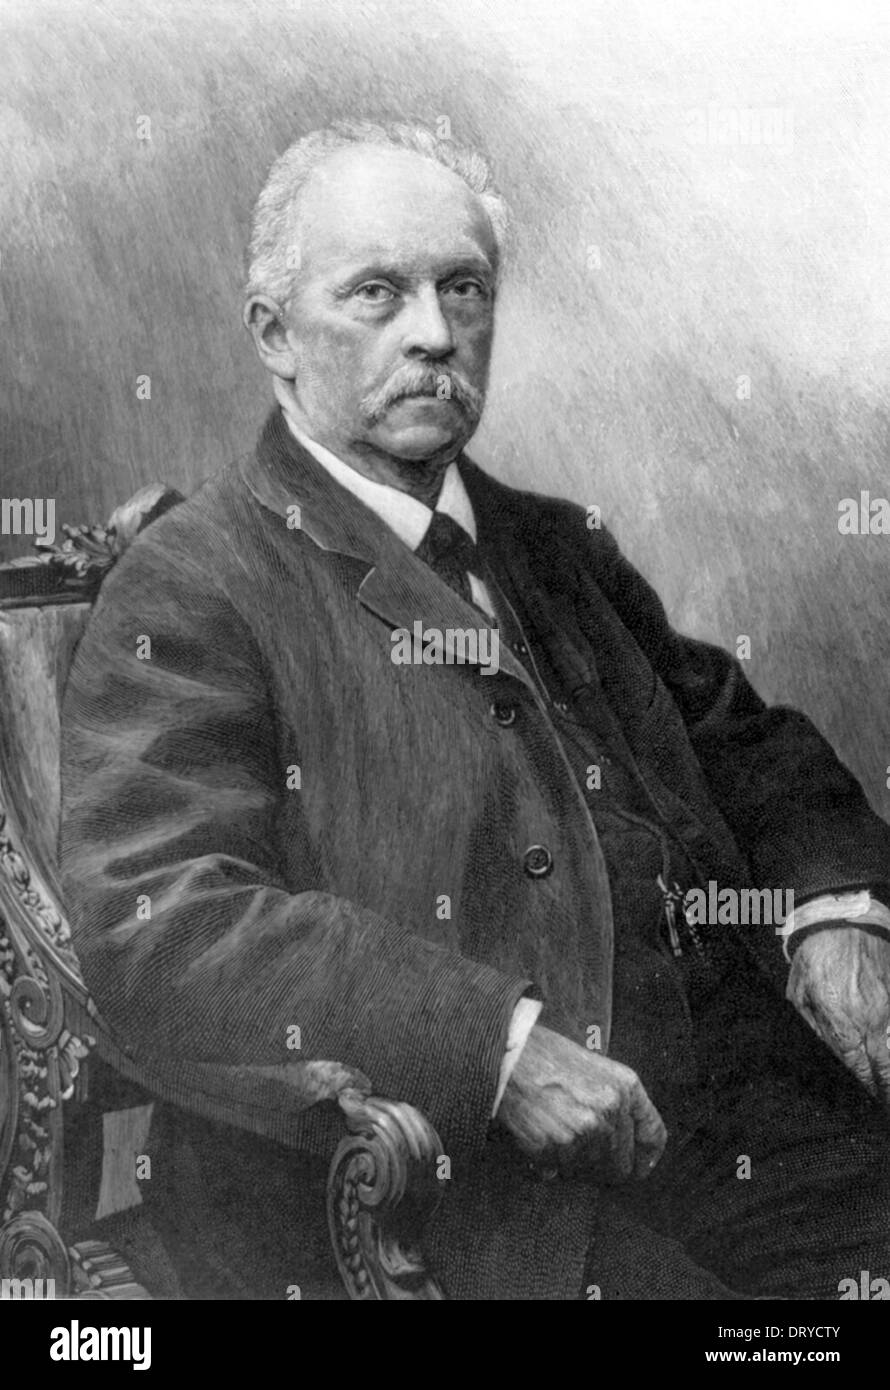 Hermann Ludwig Ferdinand von Helmholtz (August 31, 1821 – September 8, 1894) was a German physician and physicist - Stock Image